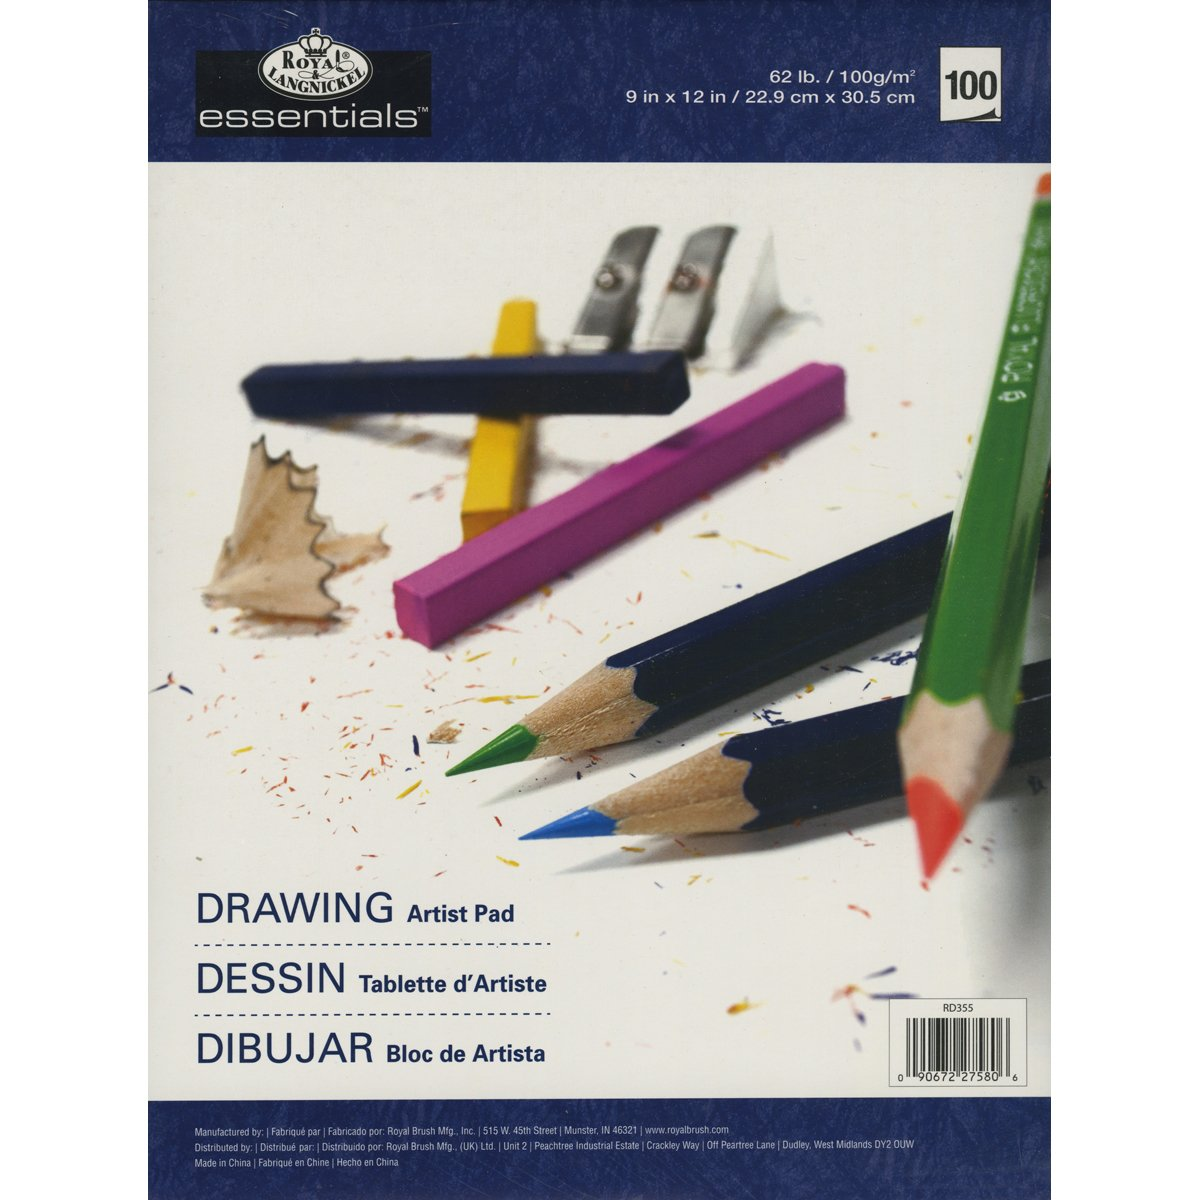 Royal Brush and Langnickel 100-Sheet Drawing Essentials Artist Paper Pad, 9-Inch by 12-Inch DOMAGRON RD35-5